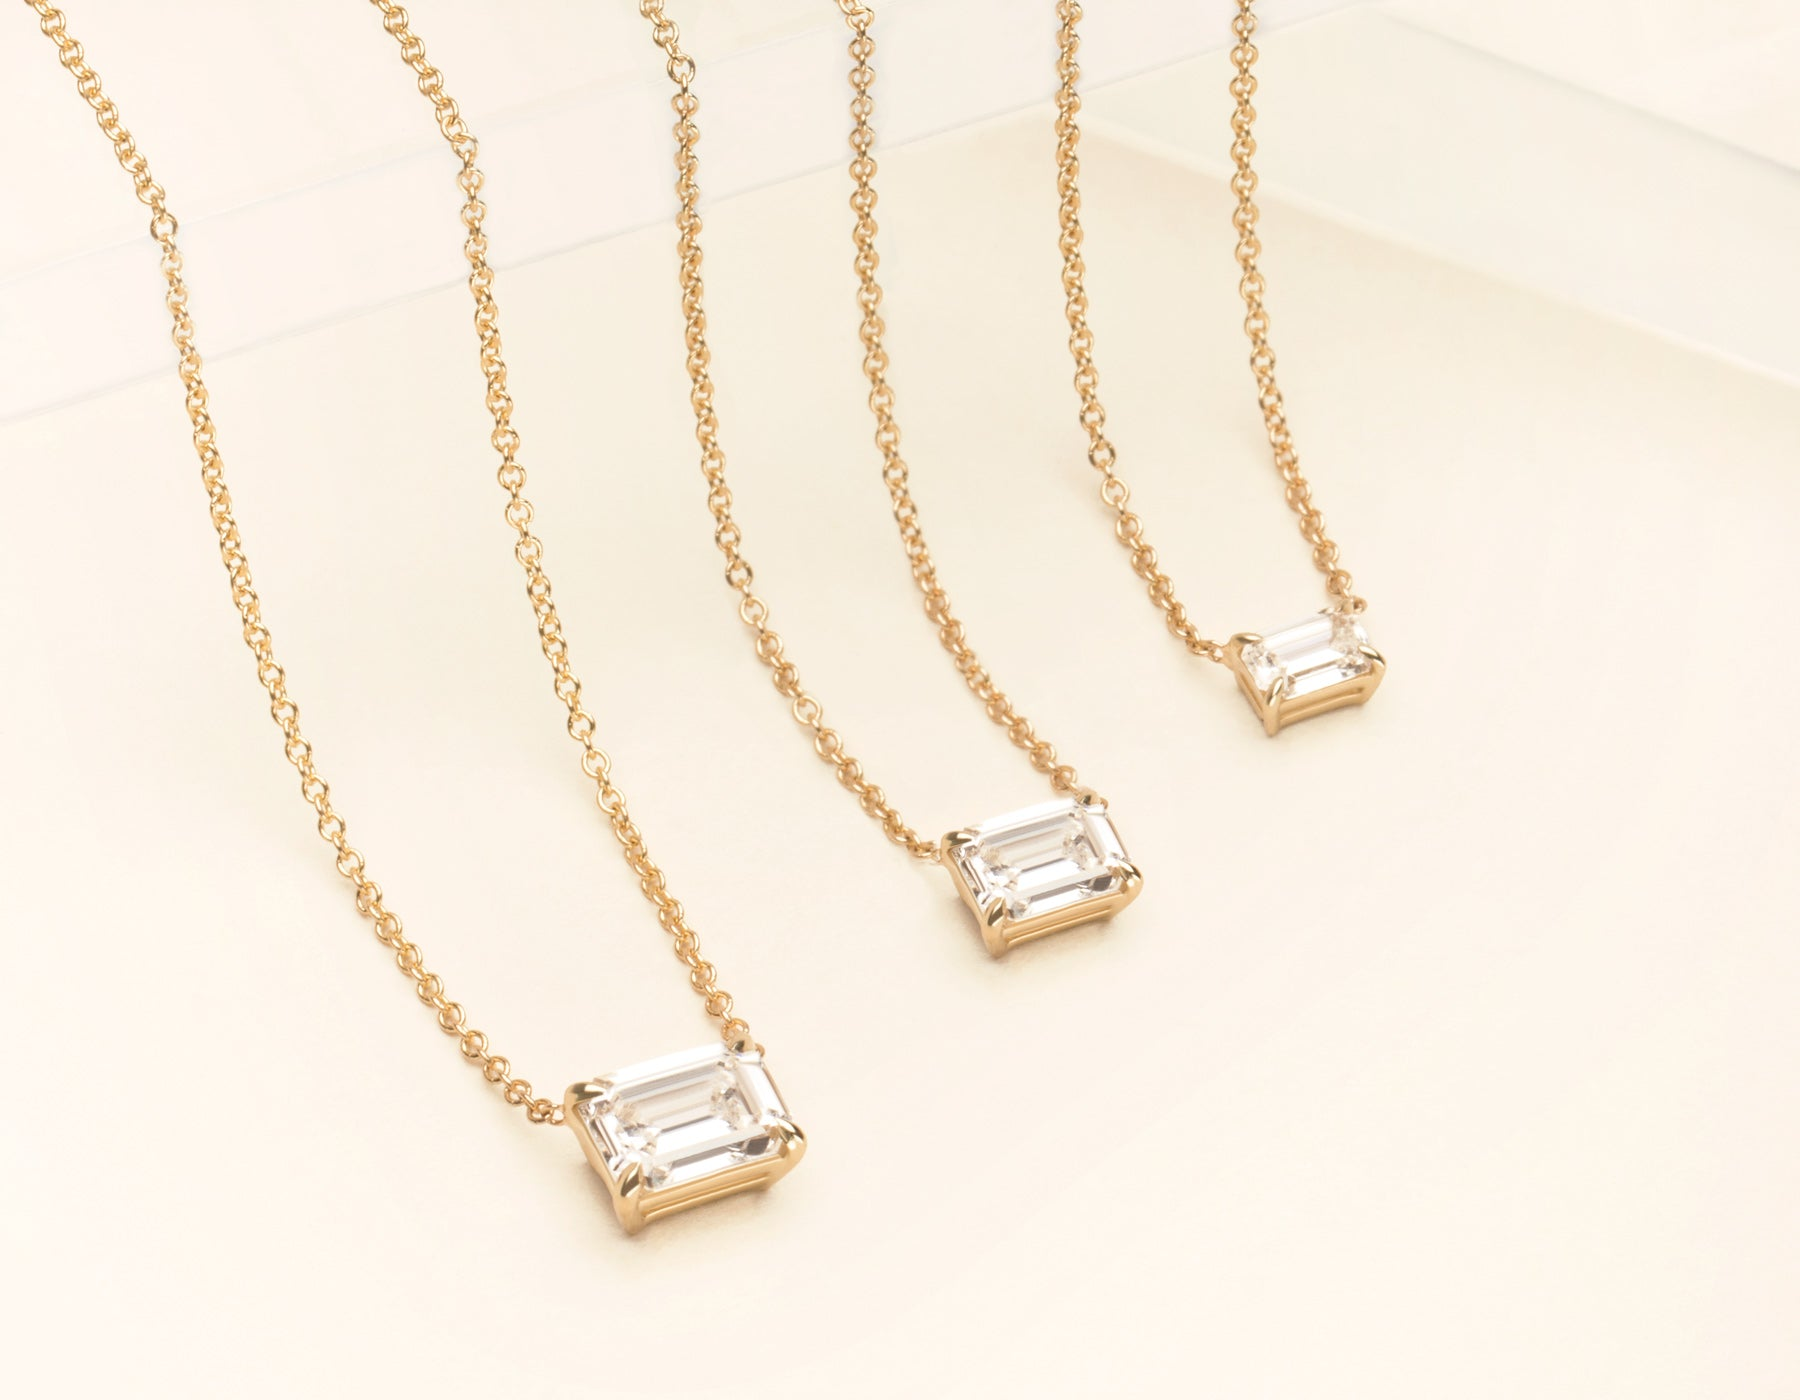 18K Solid White Gold Emerald Diamond Necklace on thing chain with .25 carat Half Carat or 1 Carat Diamond, 18K Yellow Gold